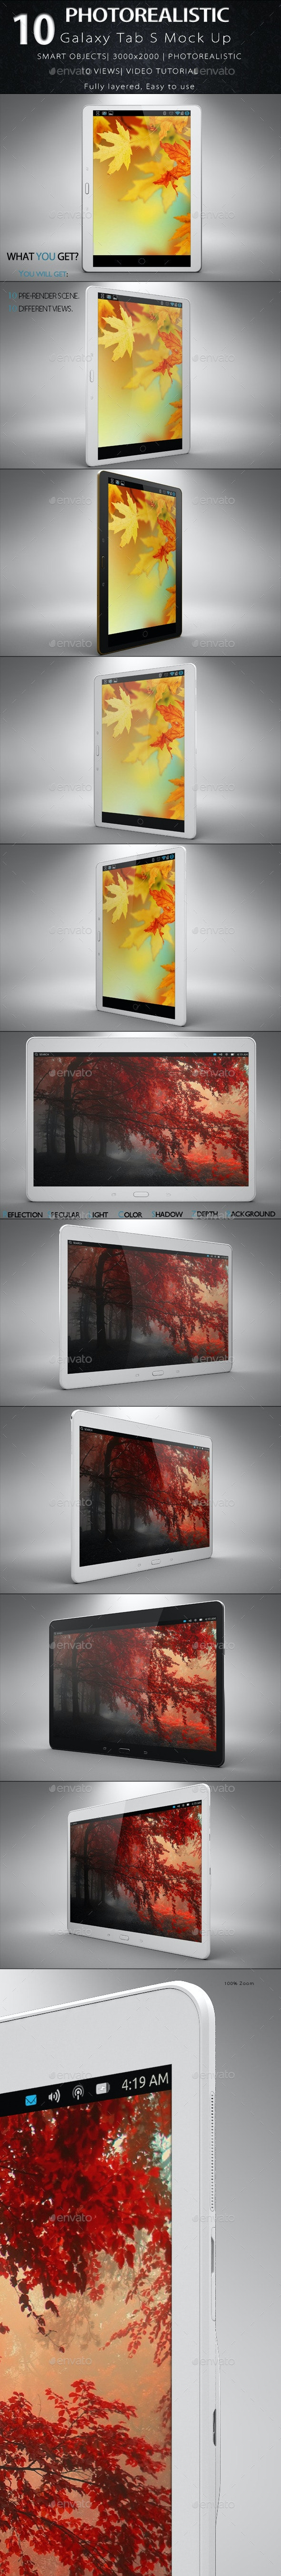 Galaxy S Tab Mock Up  - Mobile Displays